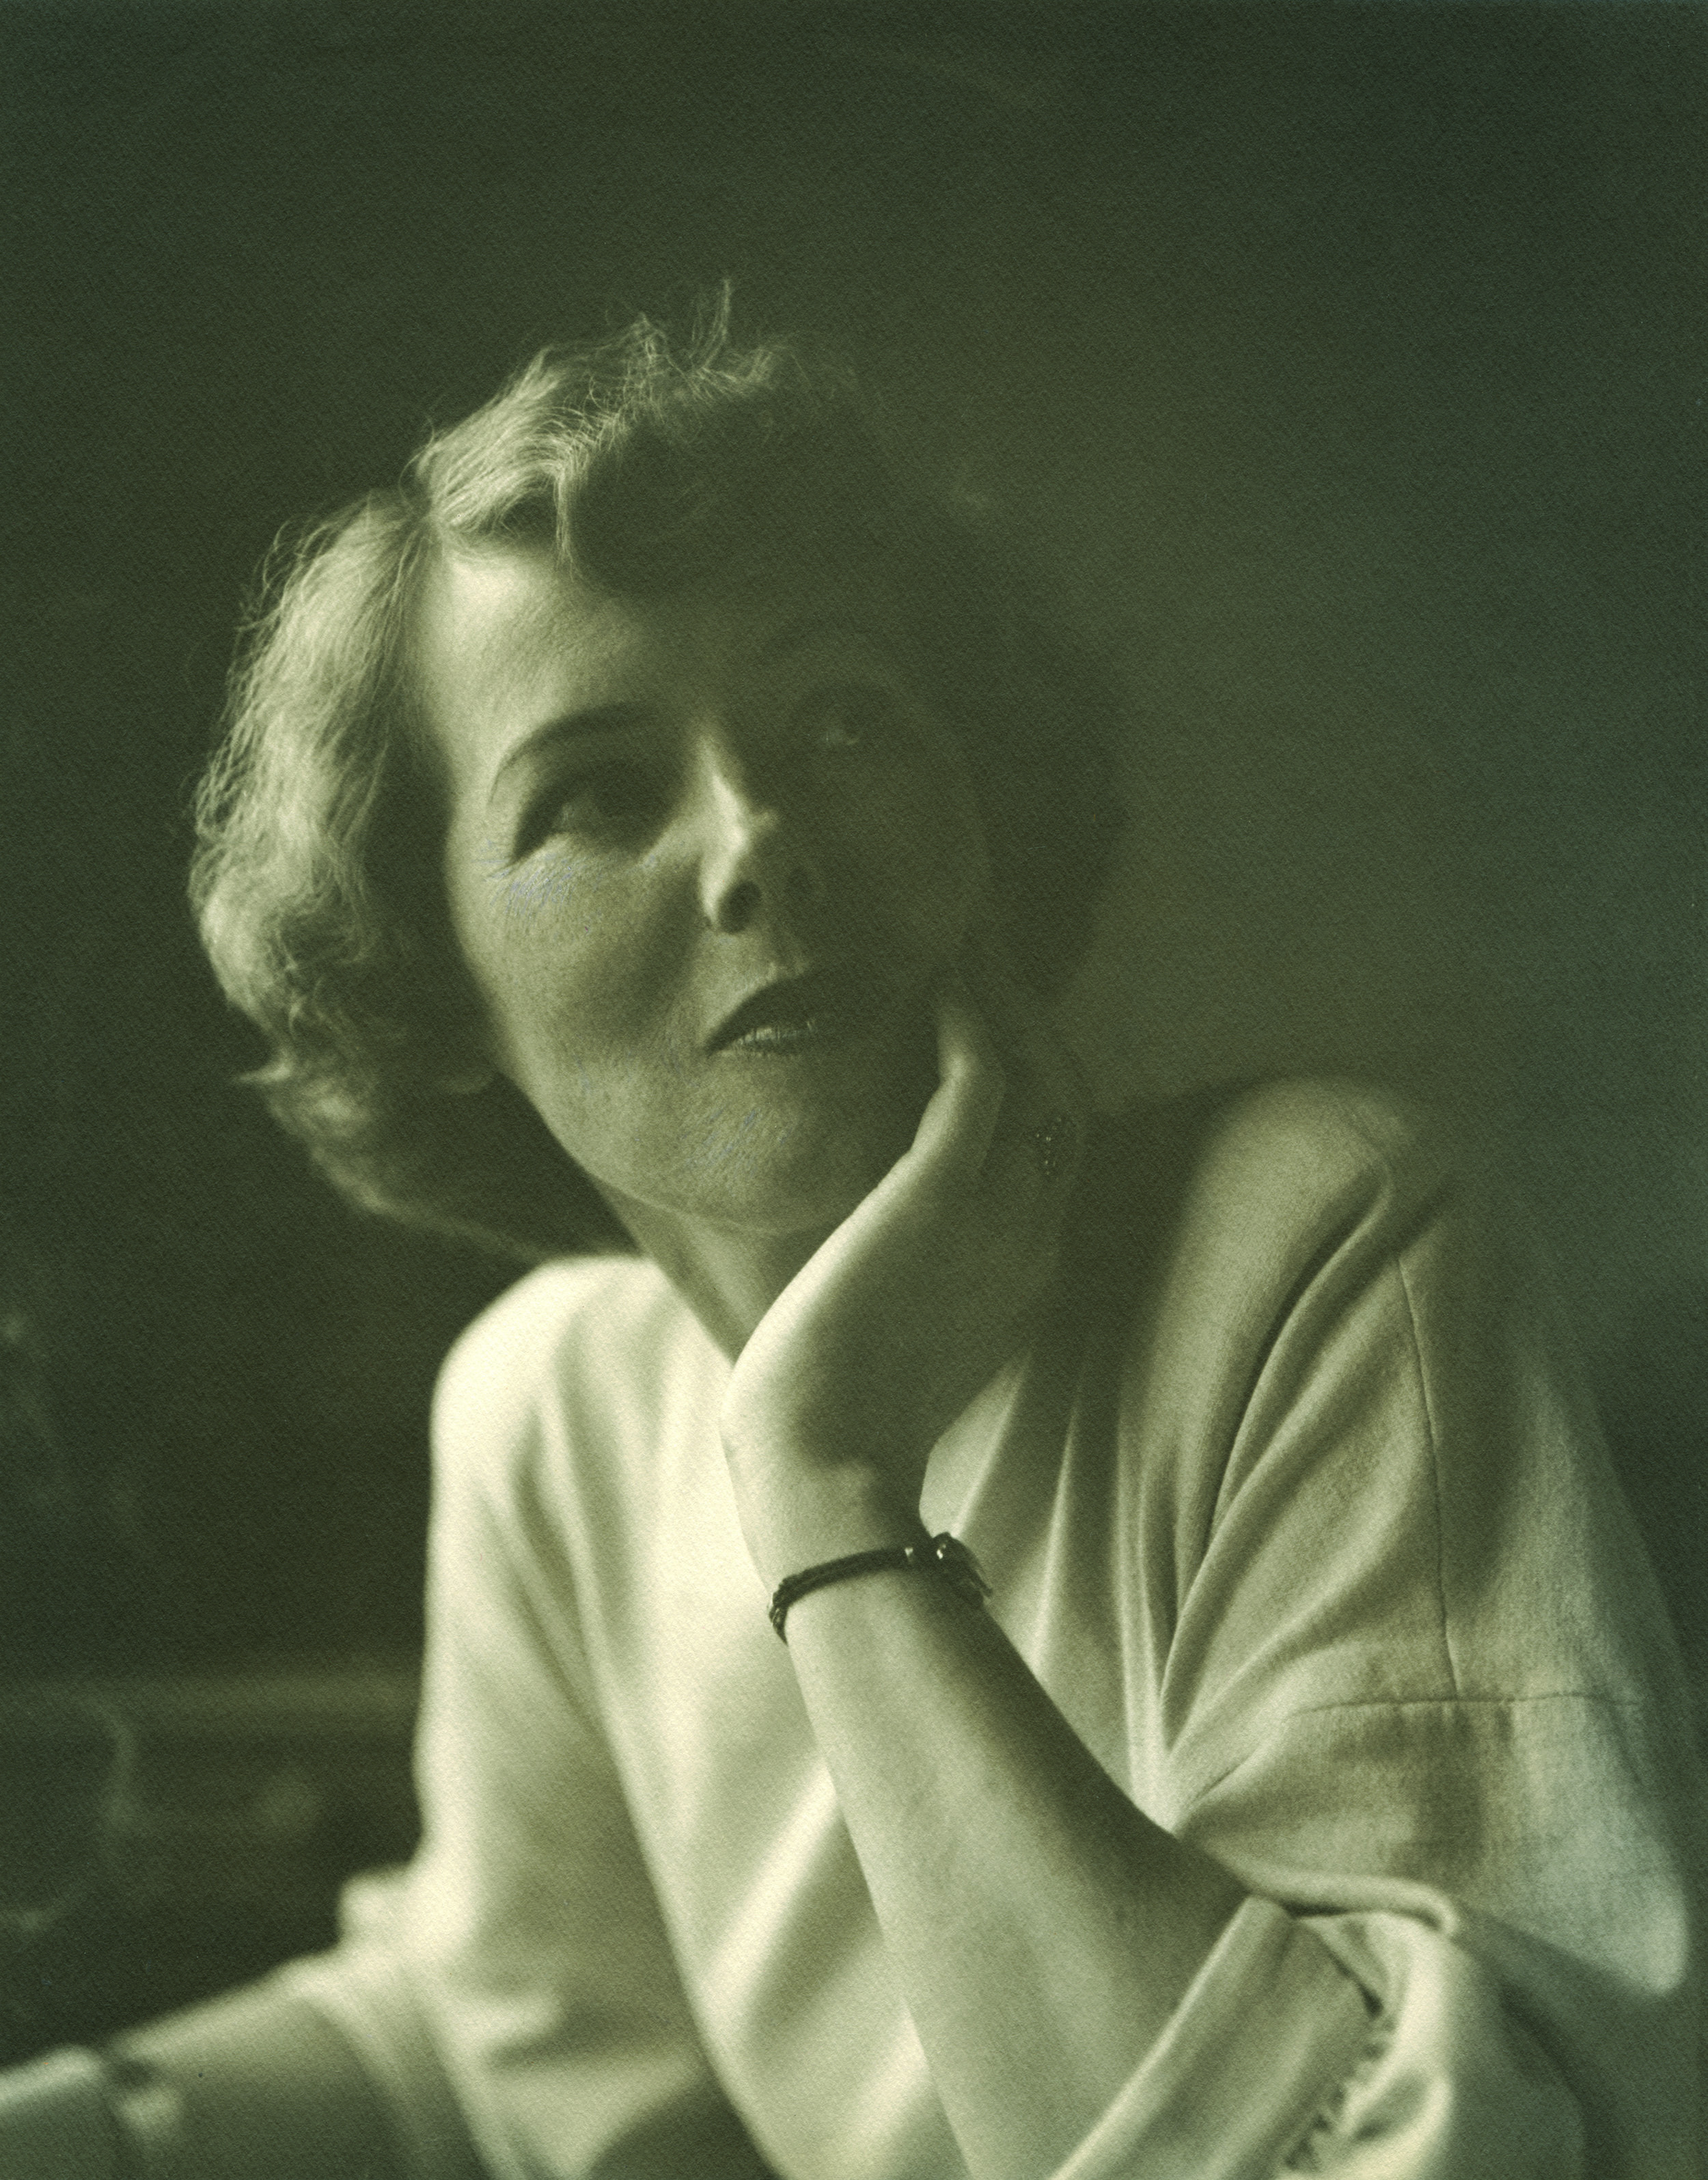 Helen Lundeberg, photo by Robert Bruce Inverarity, Robert Bruce Inverarity papers, Archives of American Art / Smithsonian Institution